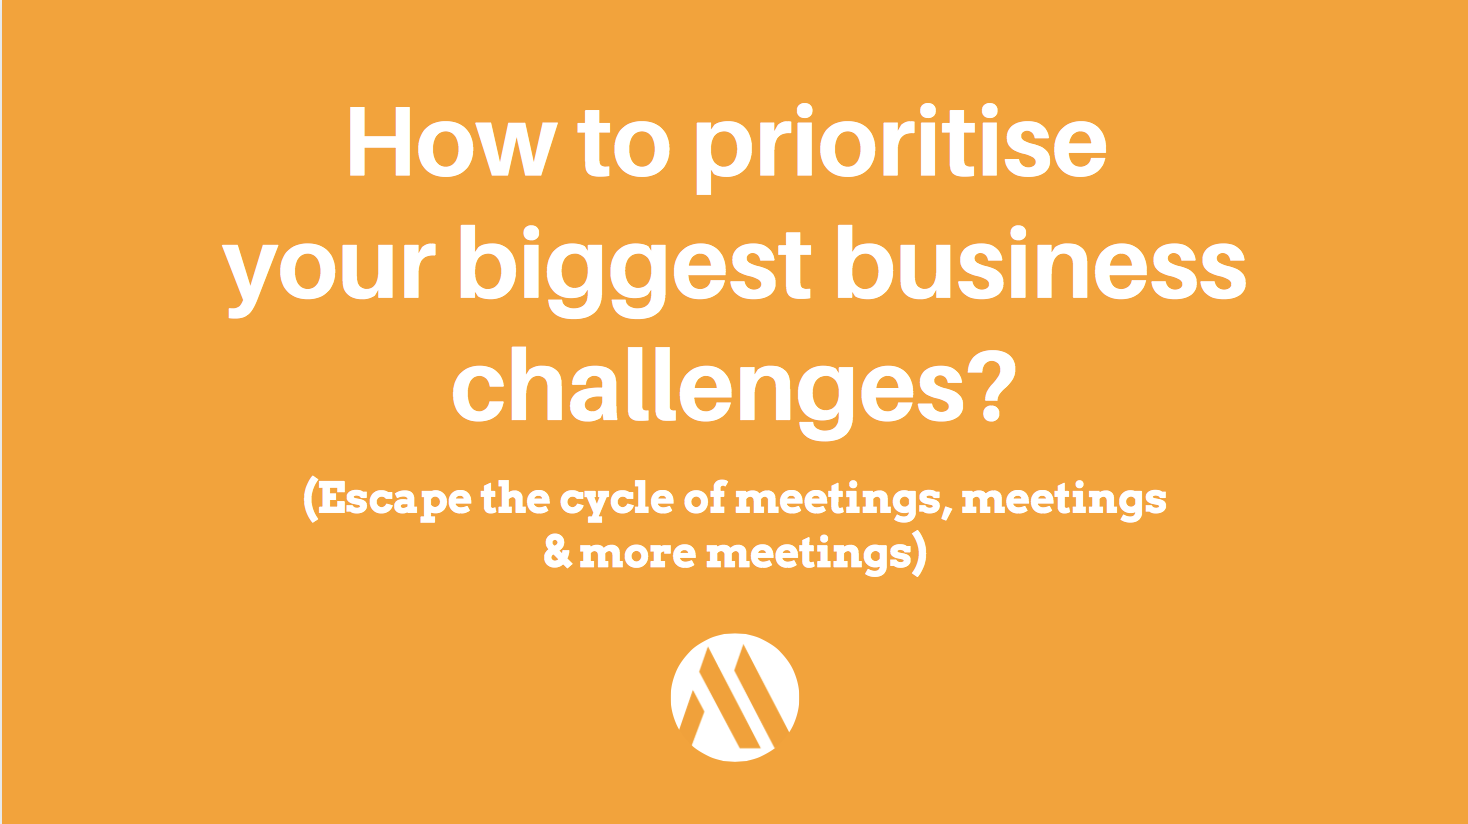 How to prioritise your biggest business challenges?